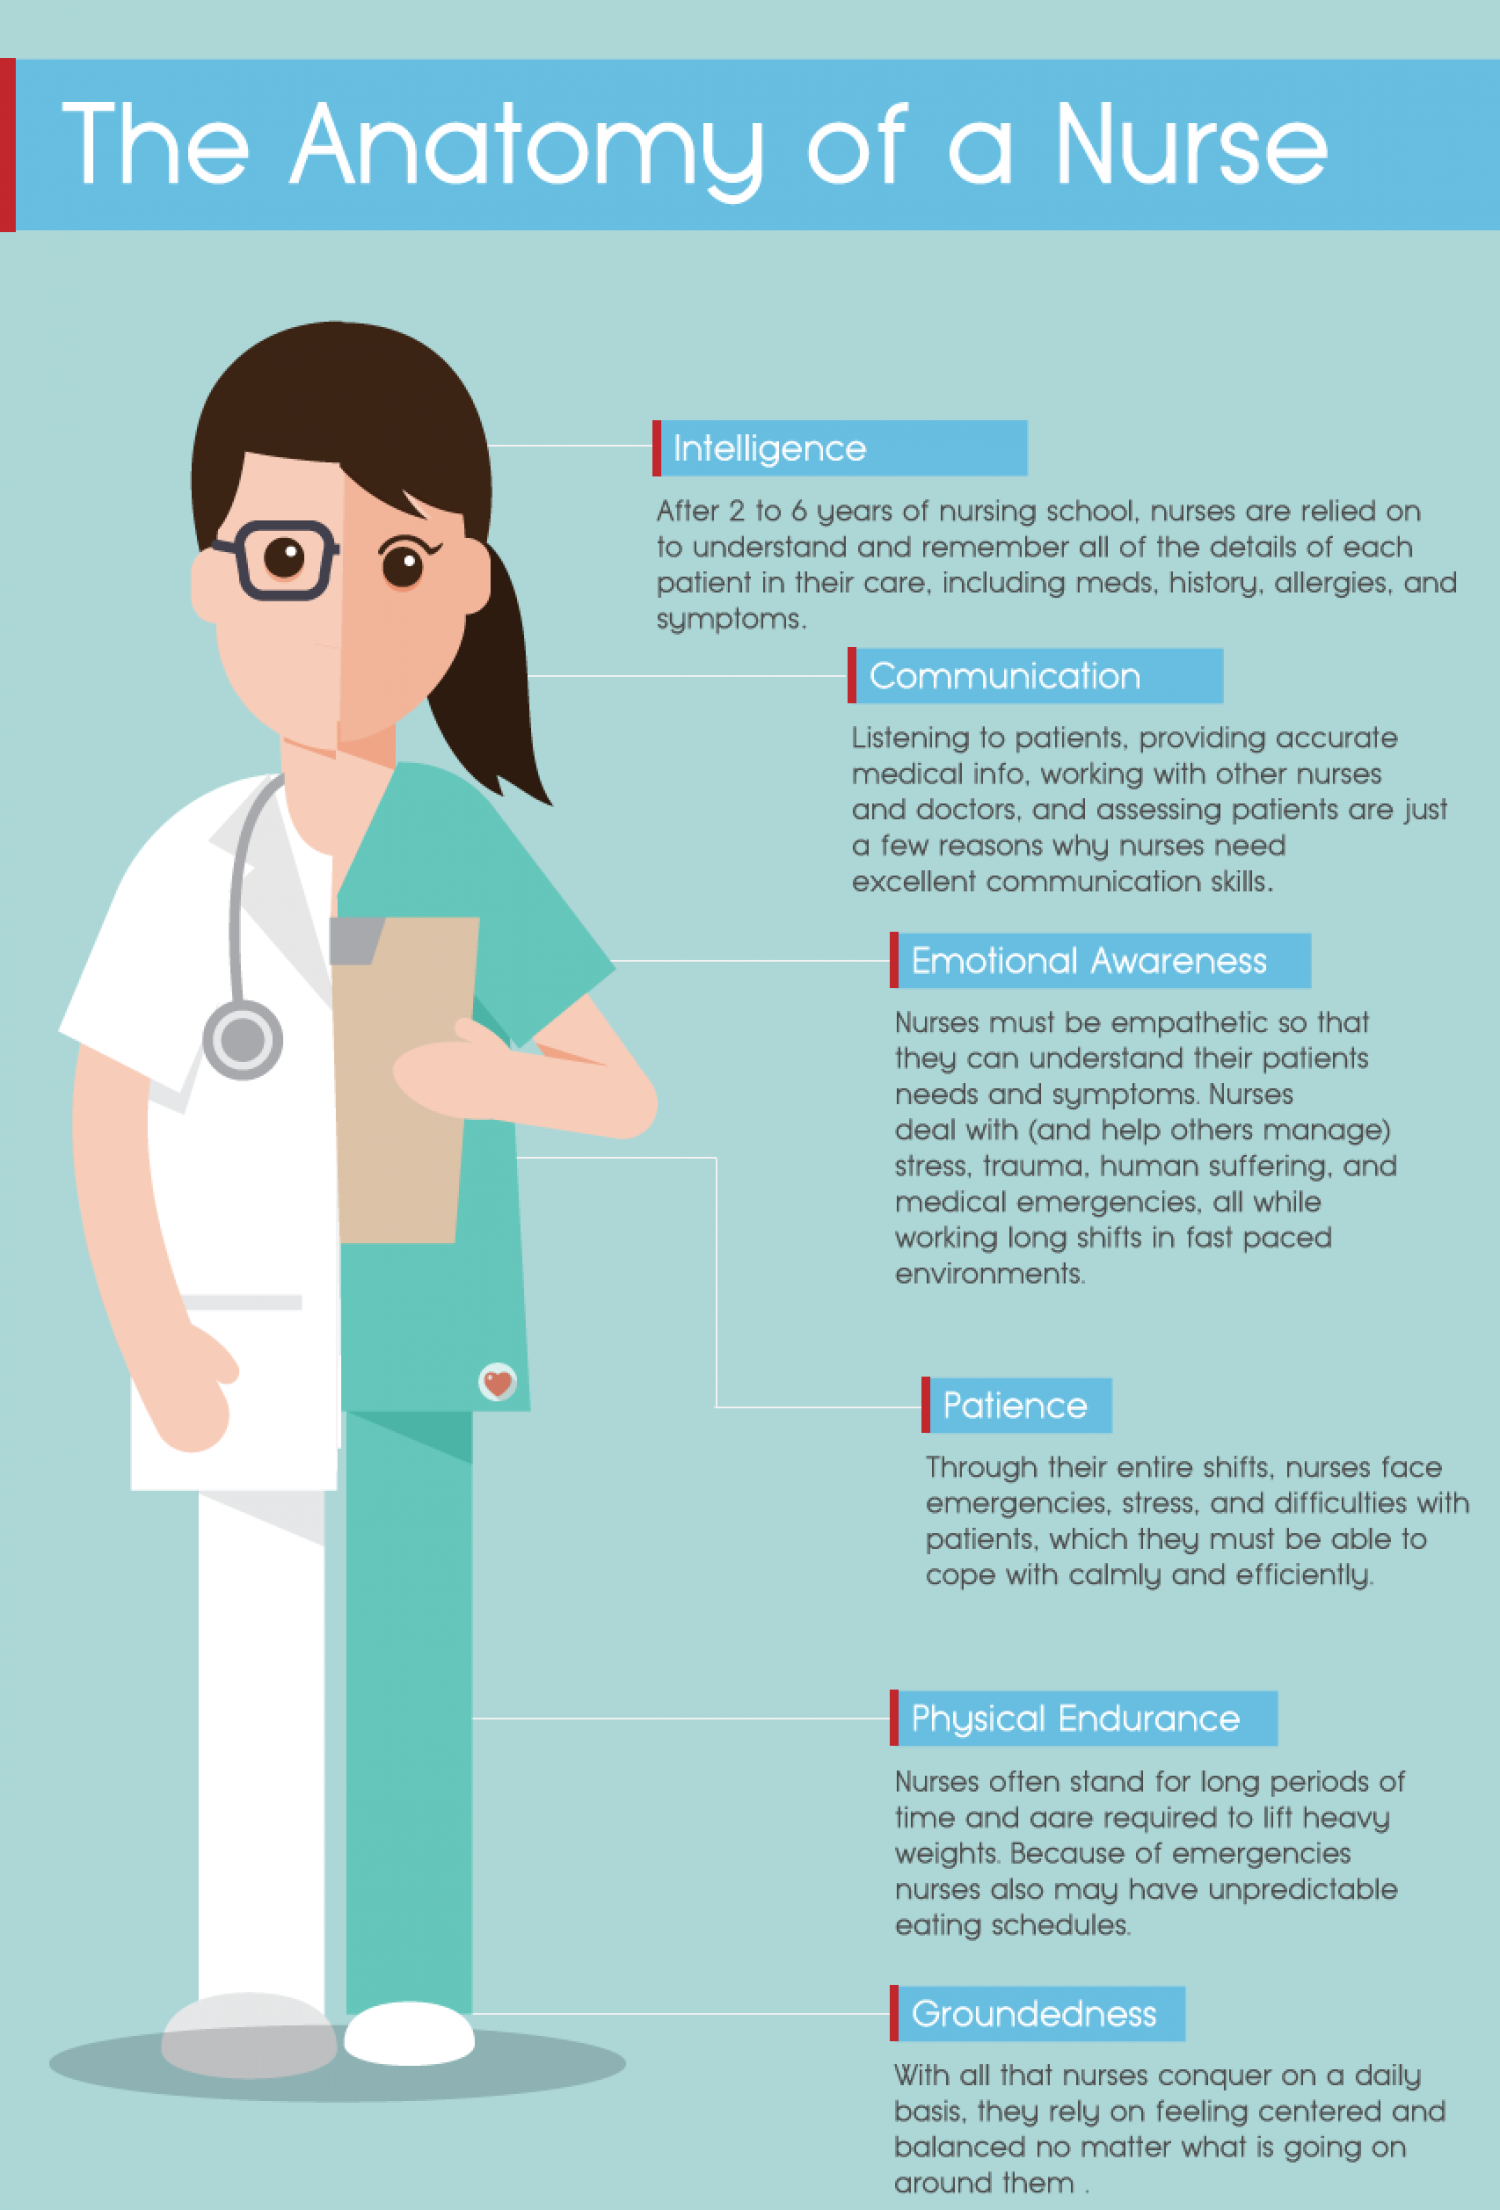 The Anatomy of a Nurse Infographic